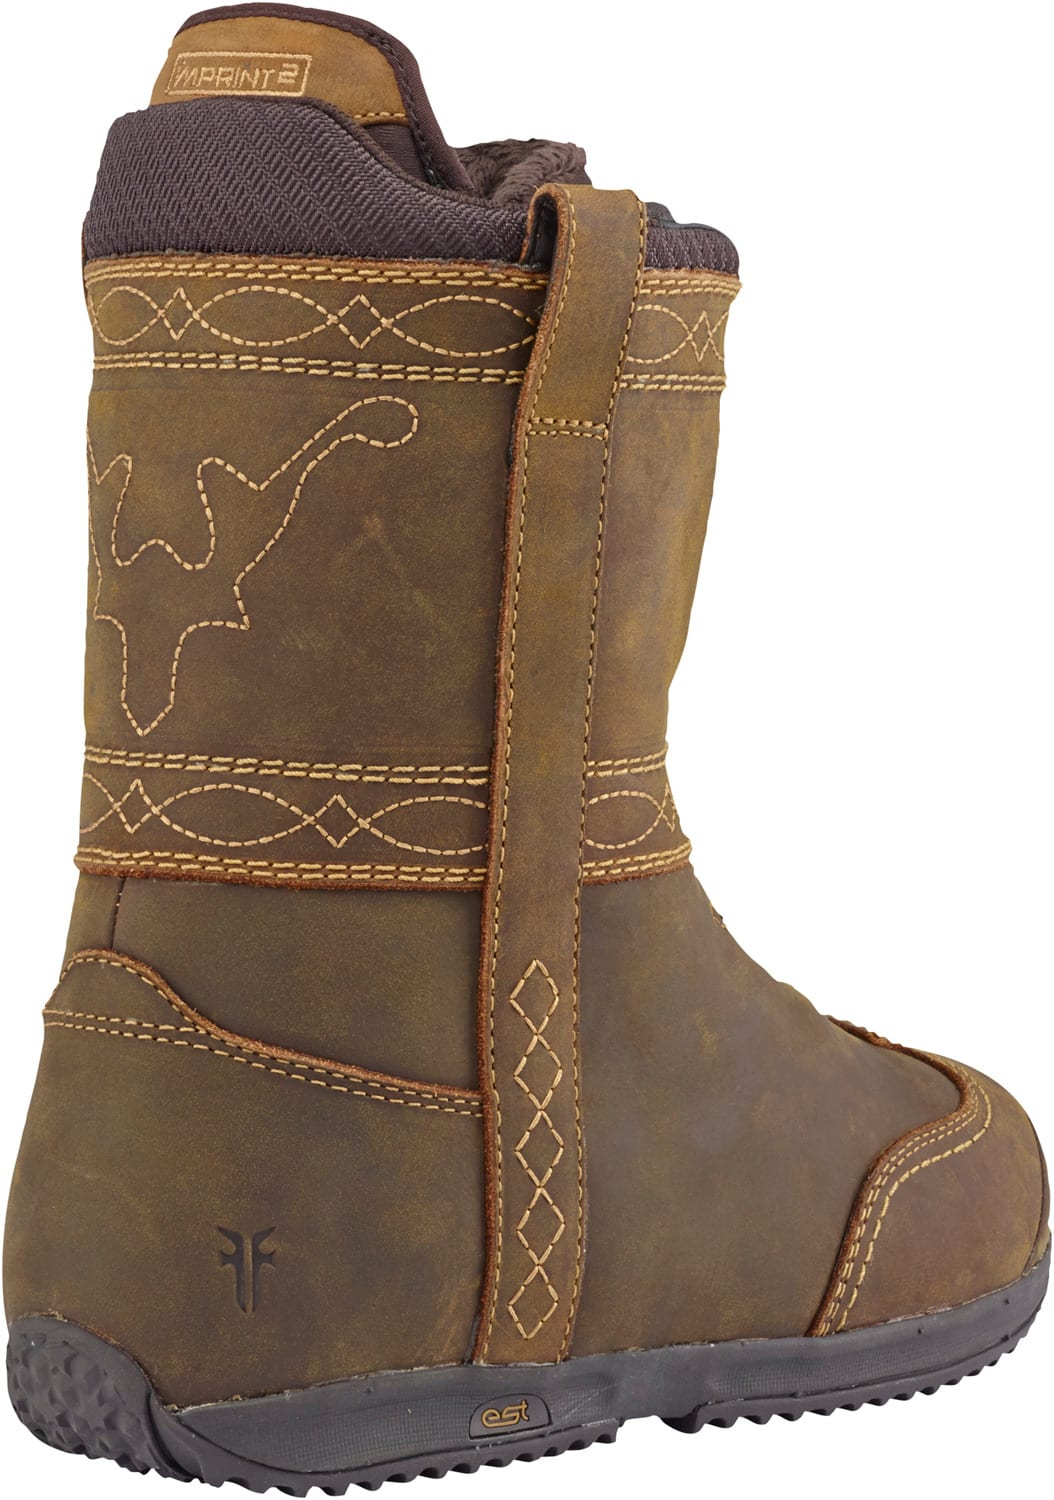 On sale burton x frye snowboard boots womens up to 40 off for Housse burton snowboard